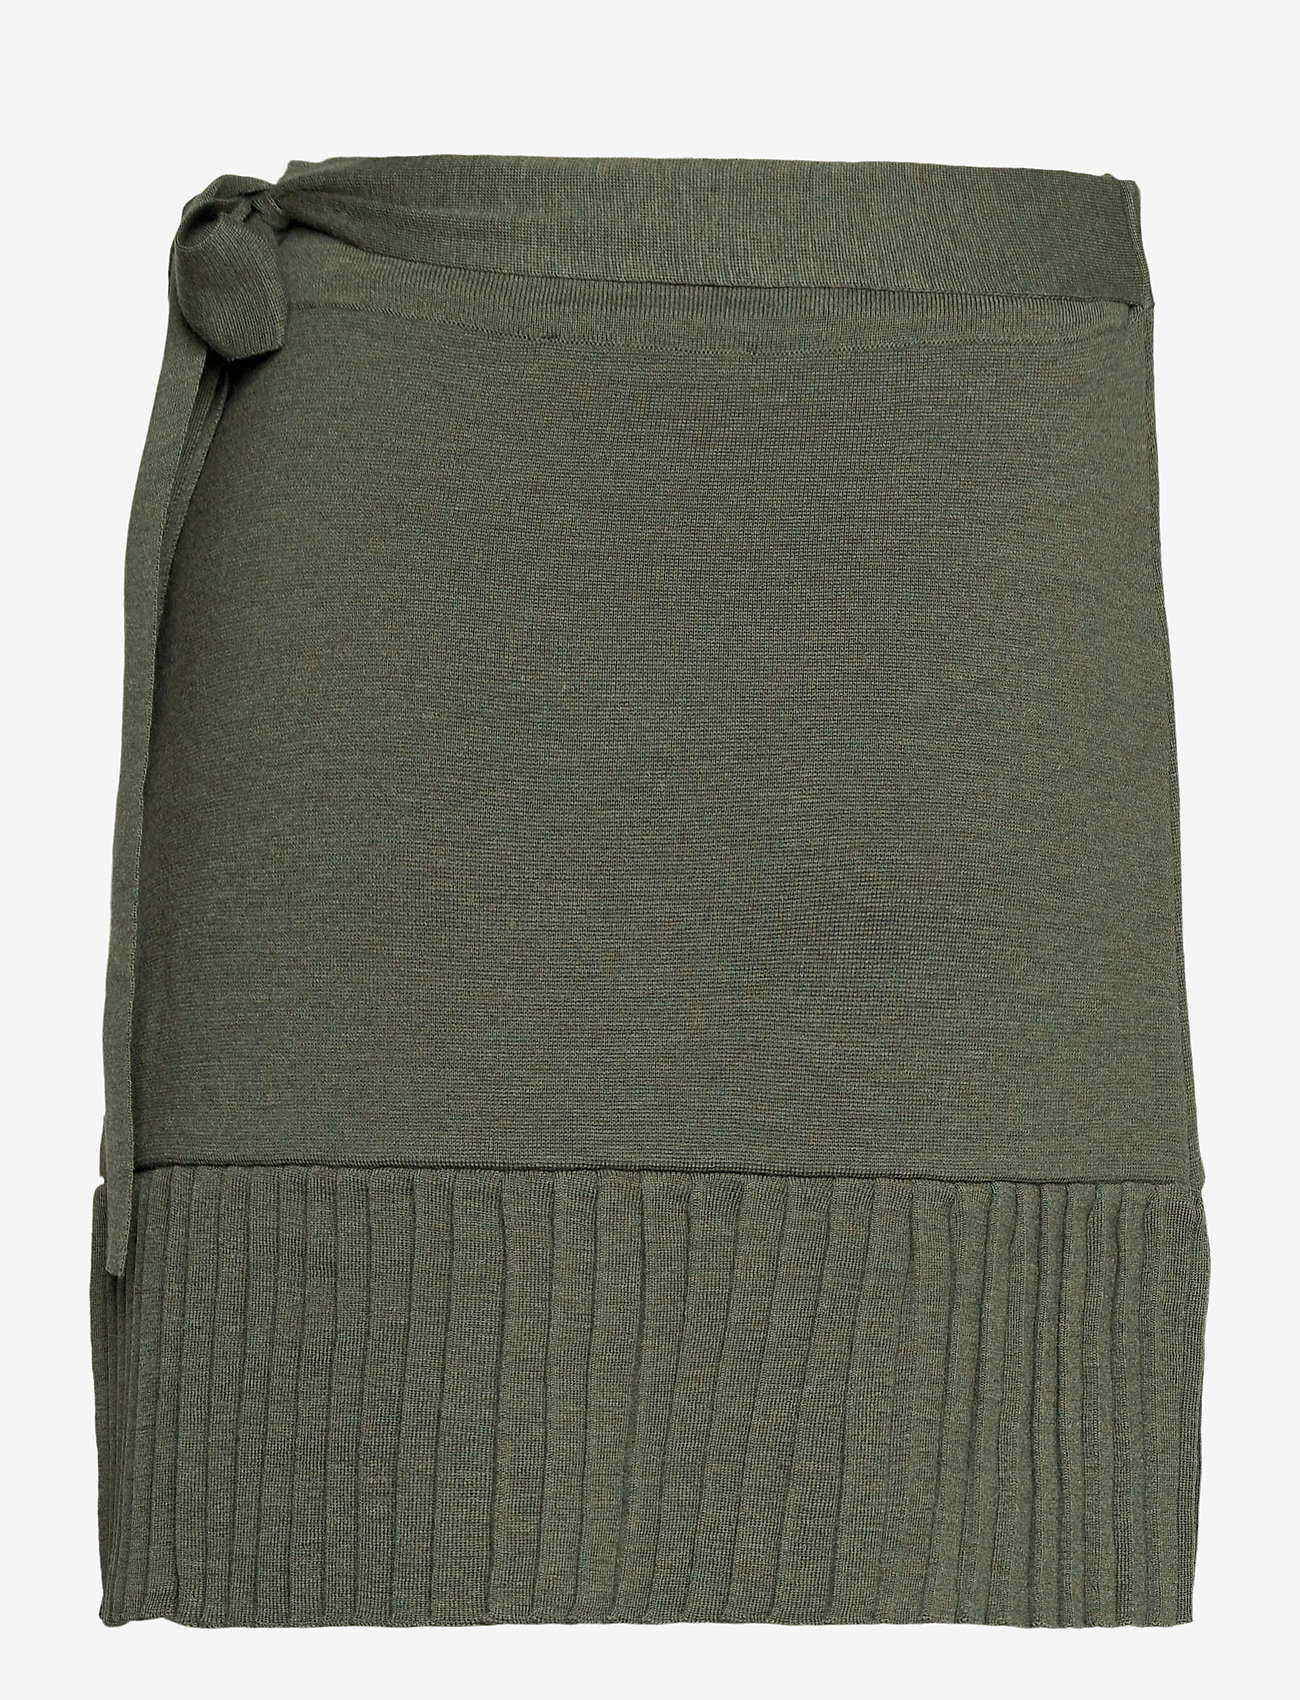 ella&il - Lucy merino skirt - jupes portefeuille - green - 1